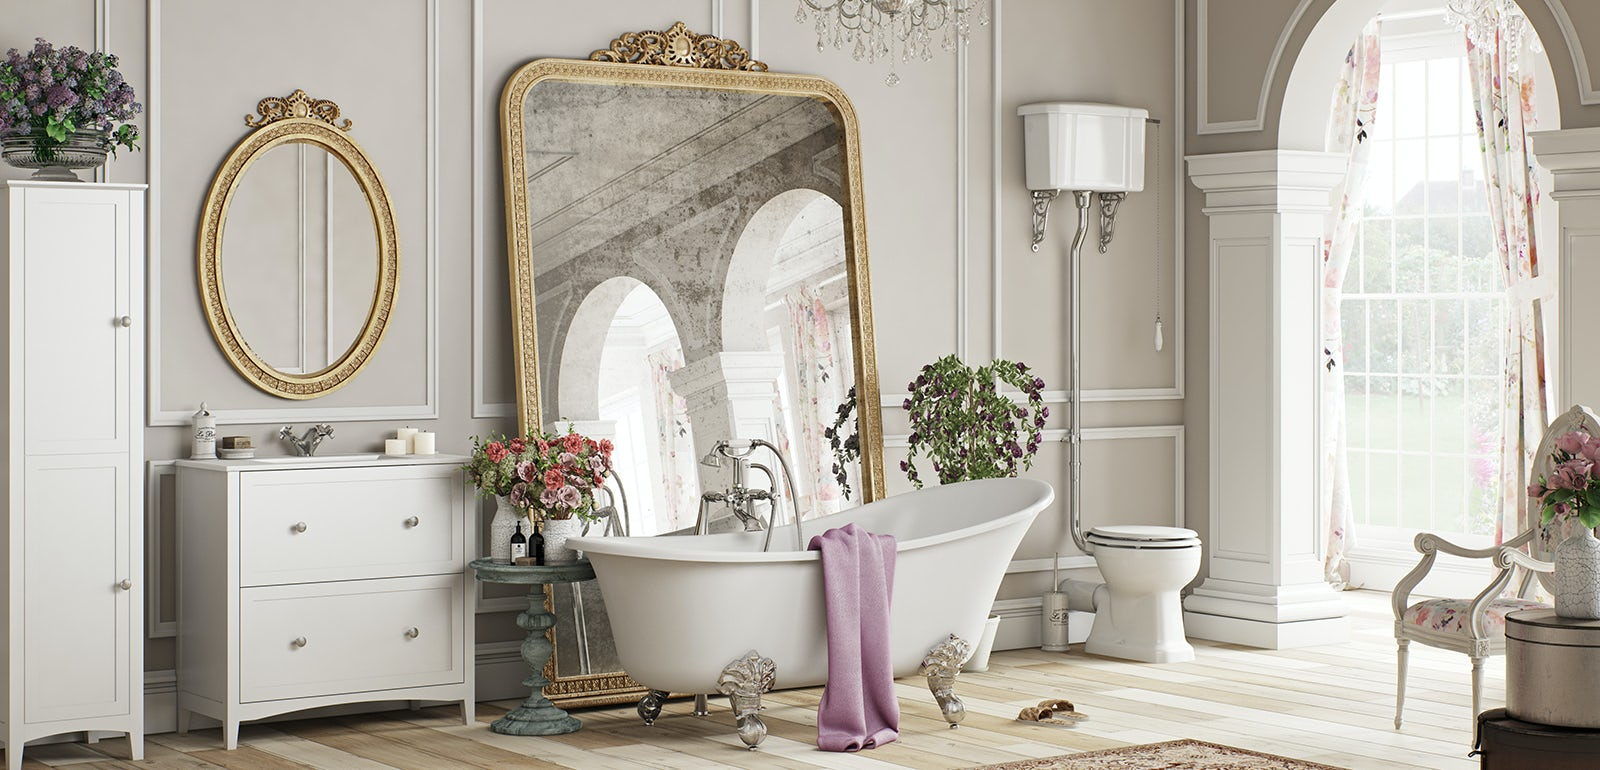 Get the look: French Floral